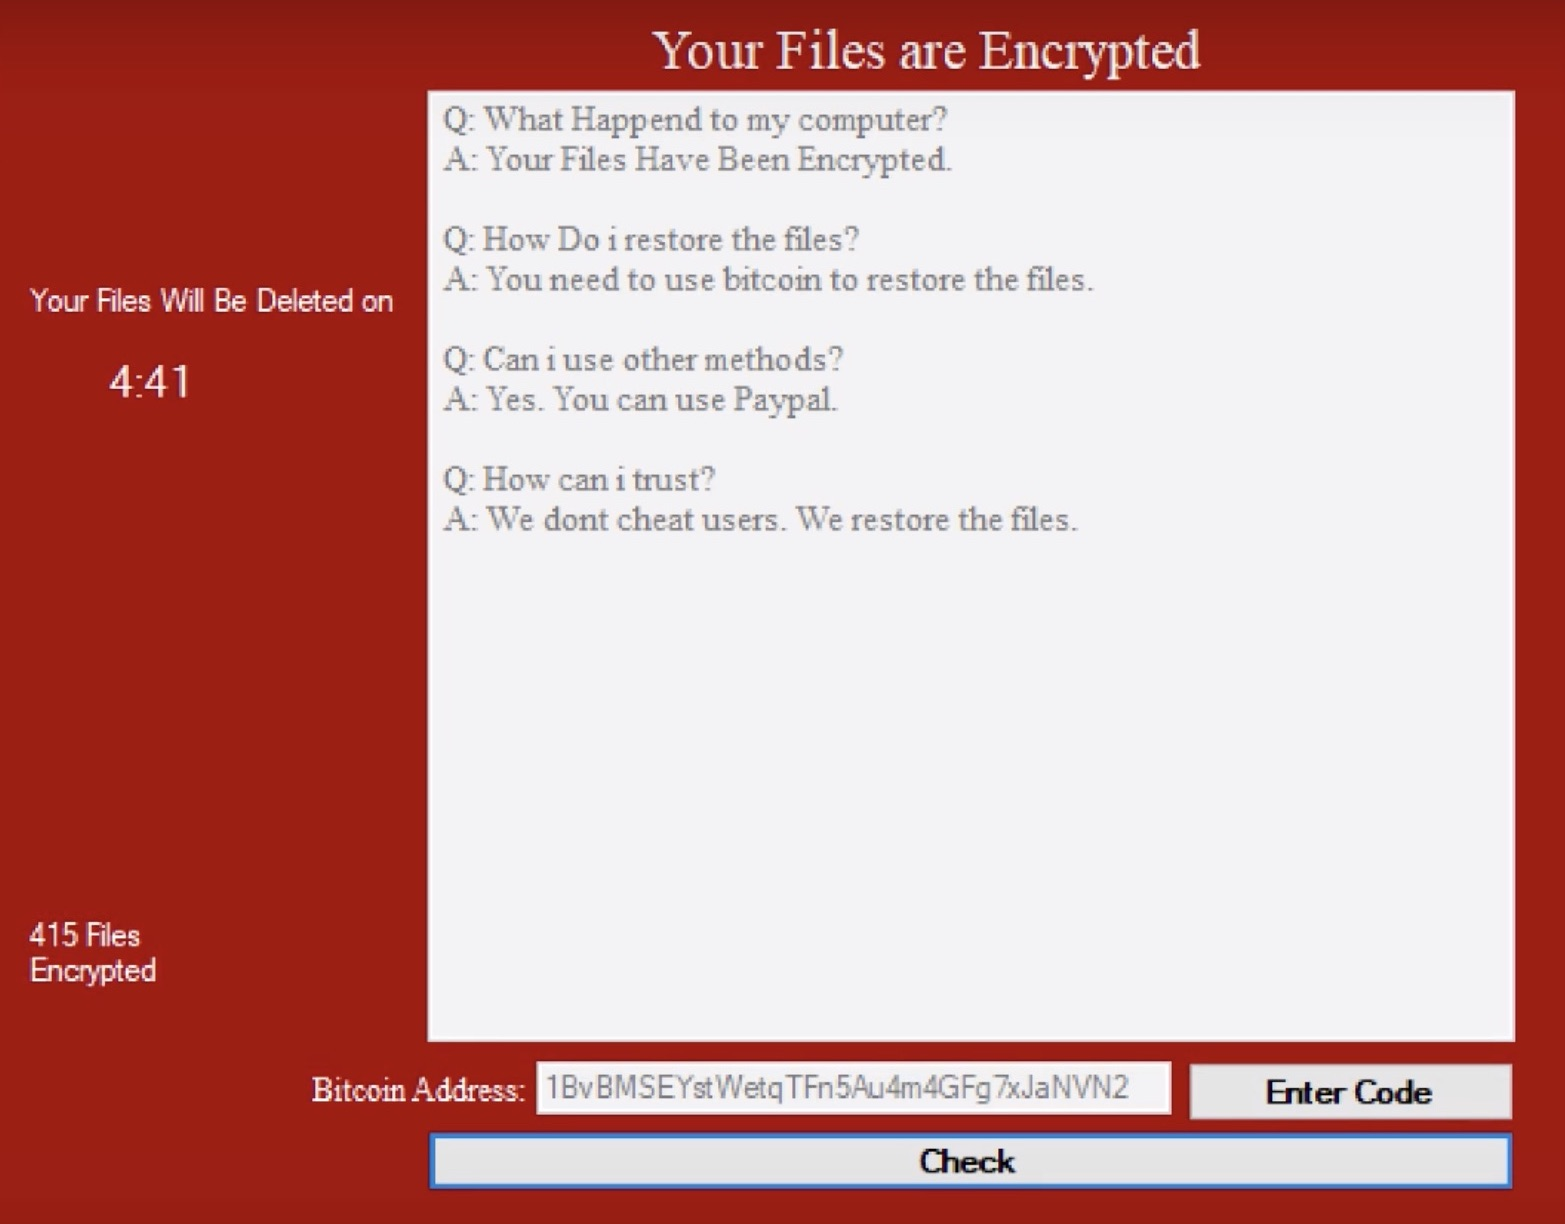 image of encrypted files ransom note